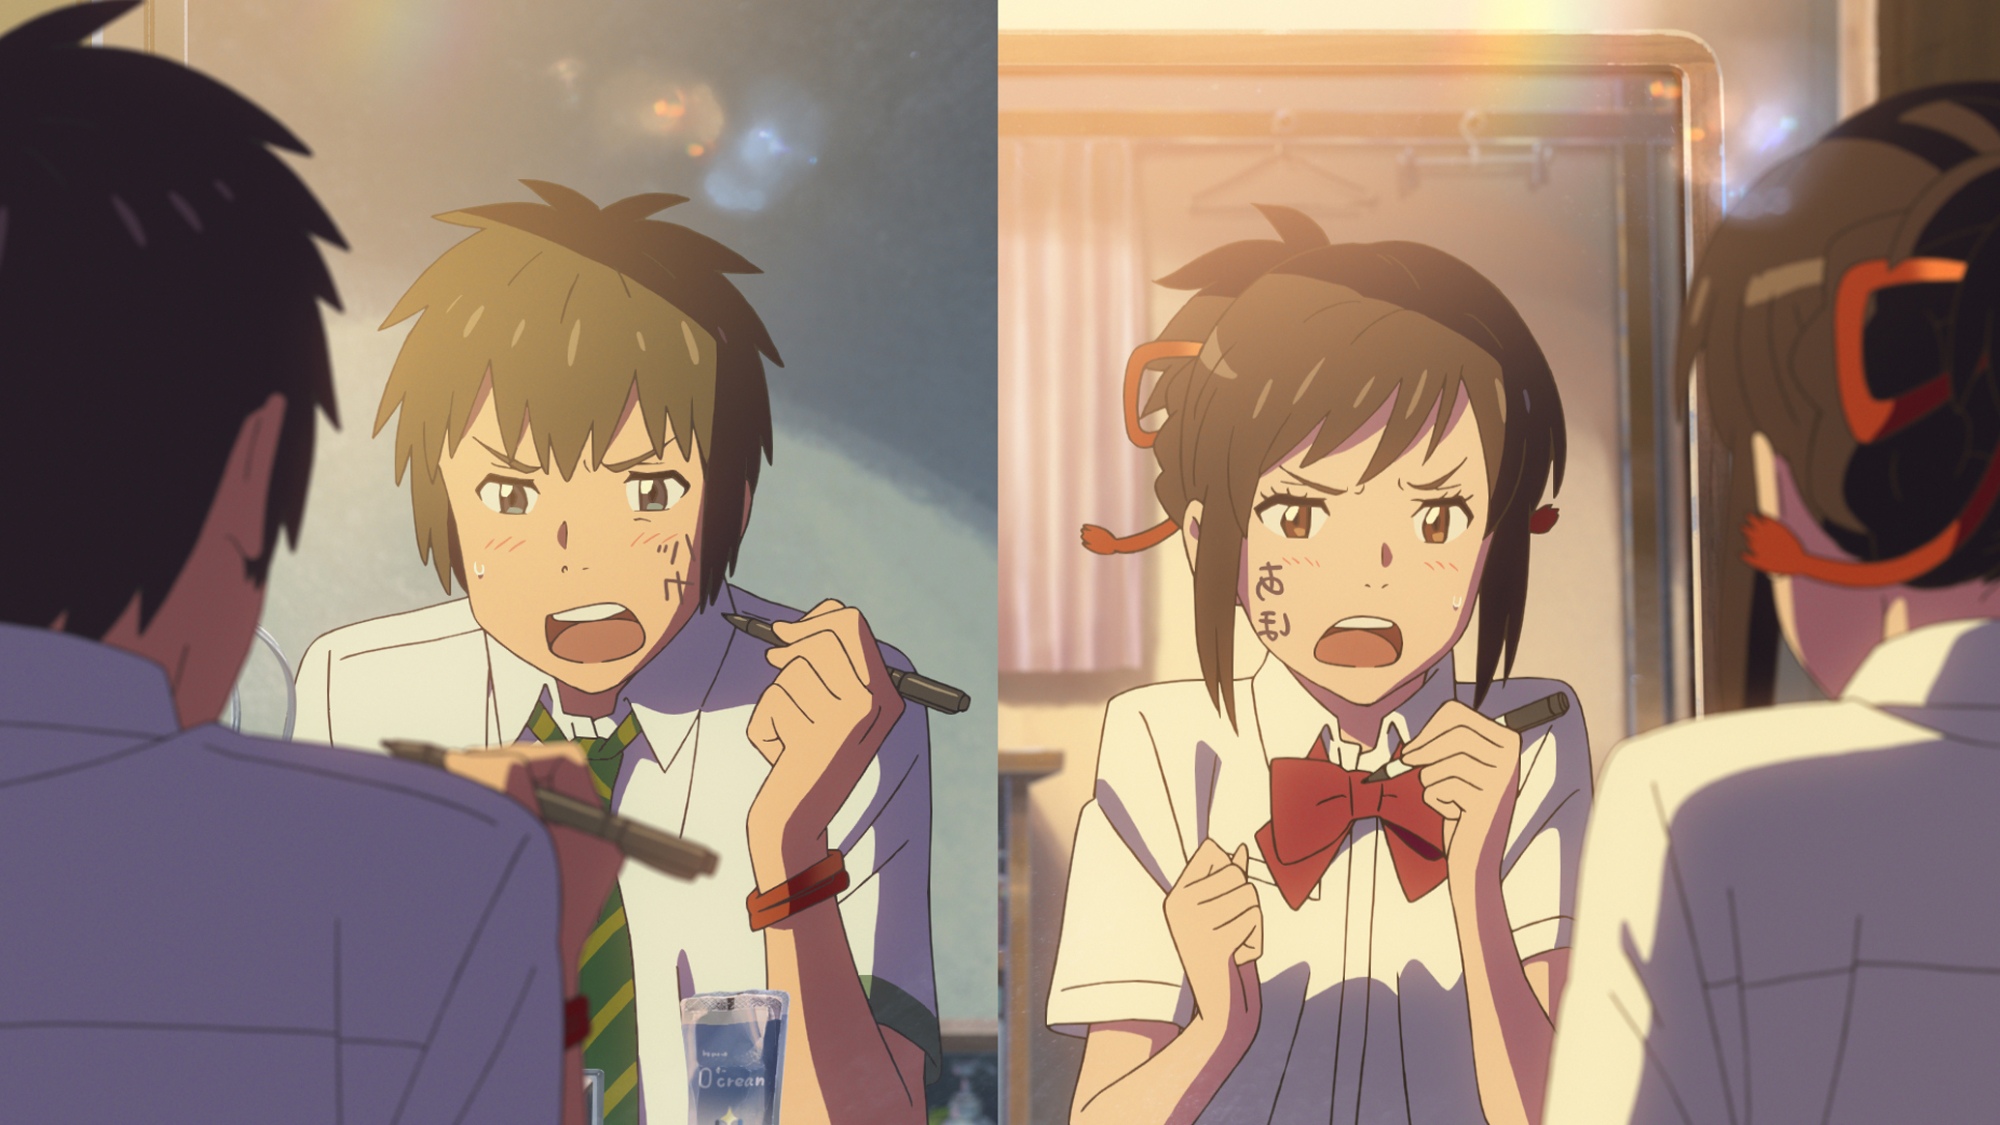 The protagonists in 'Your Name.' fight by writing on each other's faces when they've switched bodies.